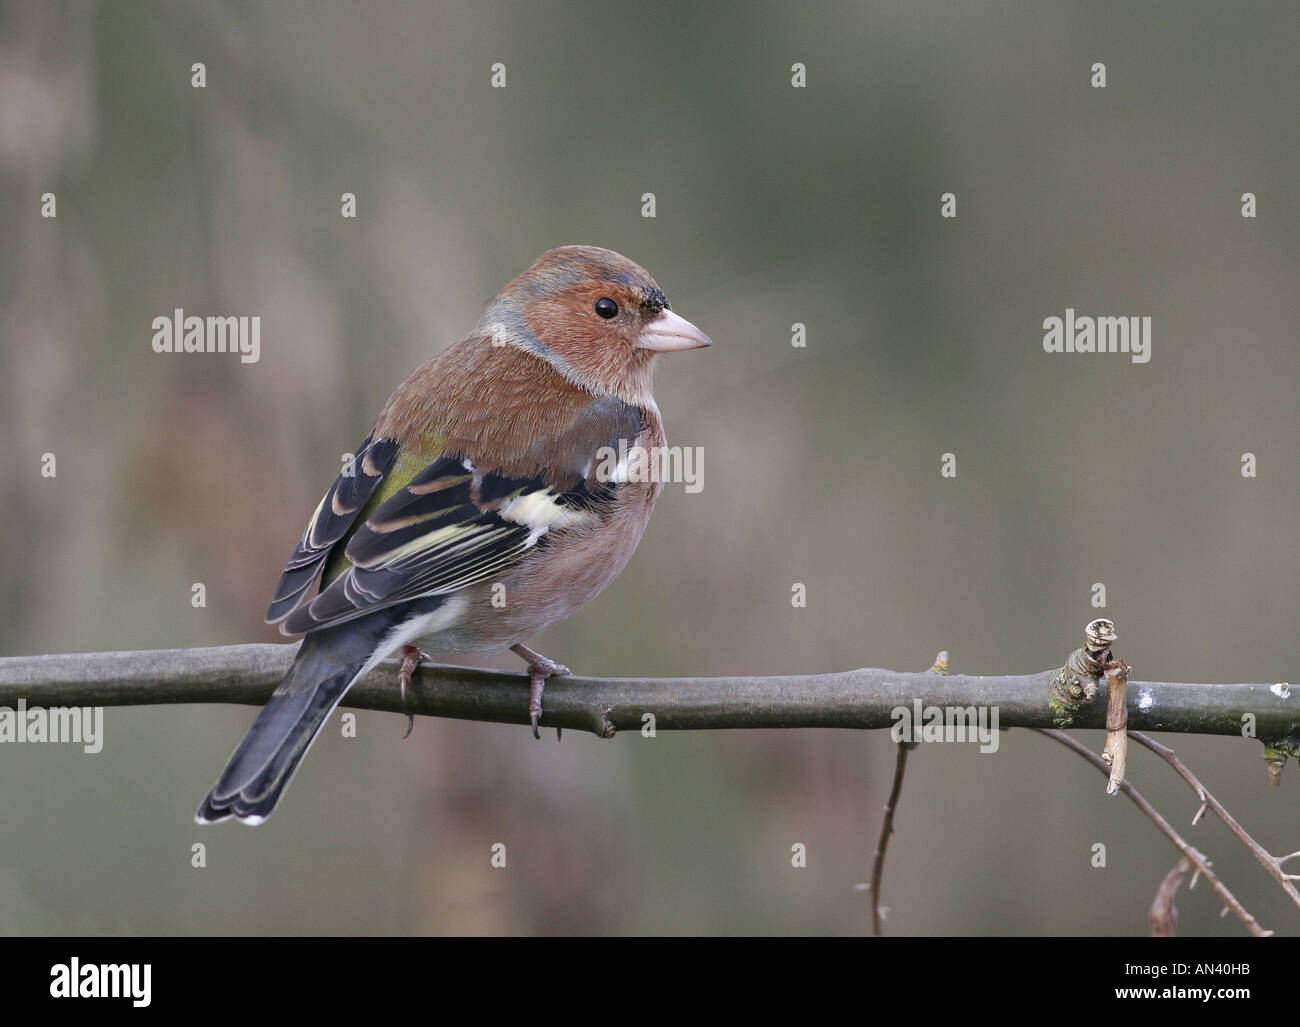 Chaffinch Fringilla coelebs Adult male perched on branch Leicestershire England - Stock Image